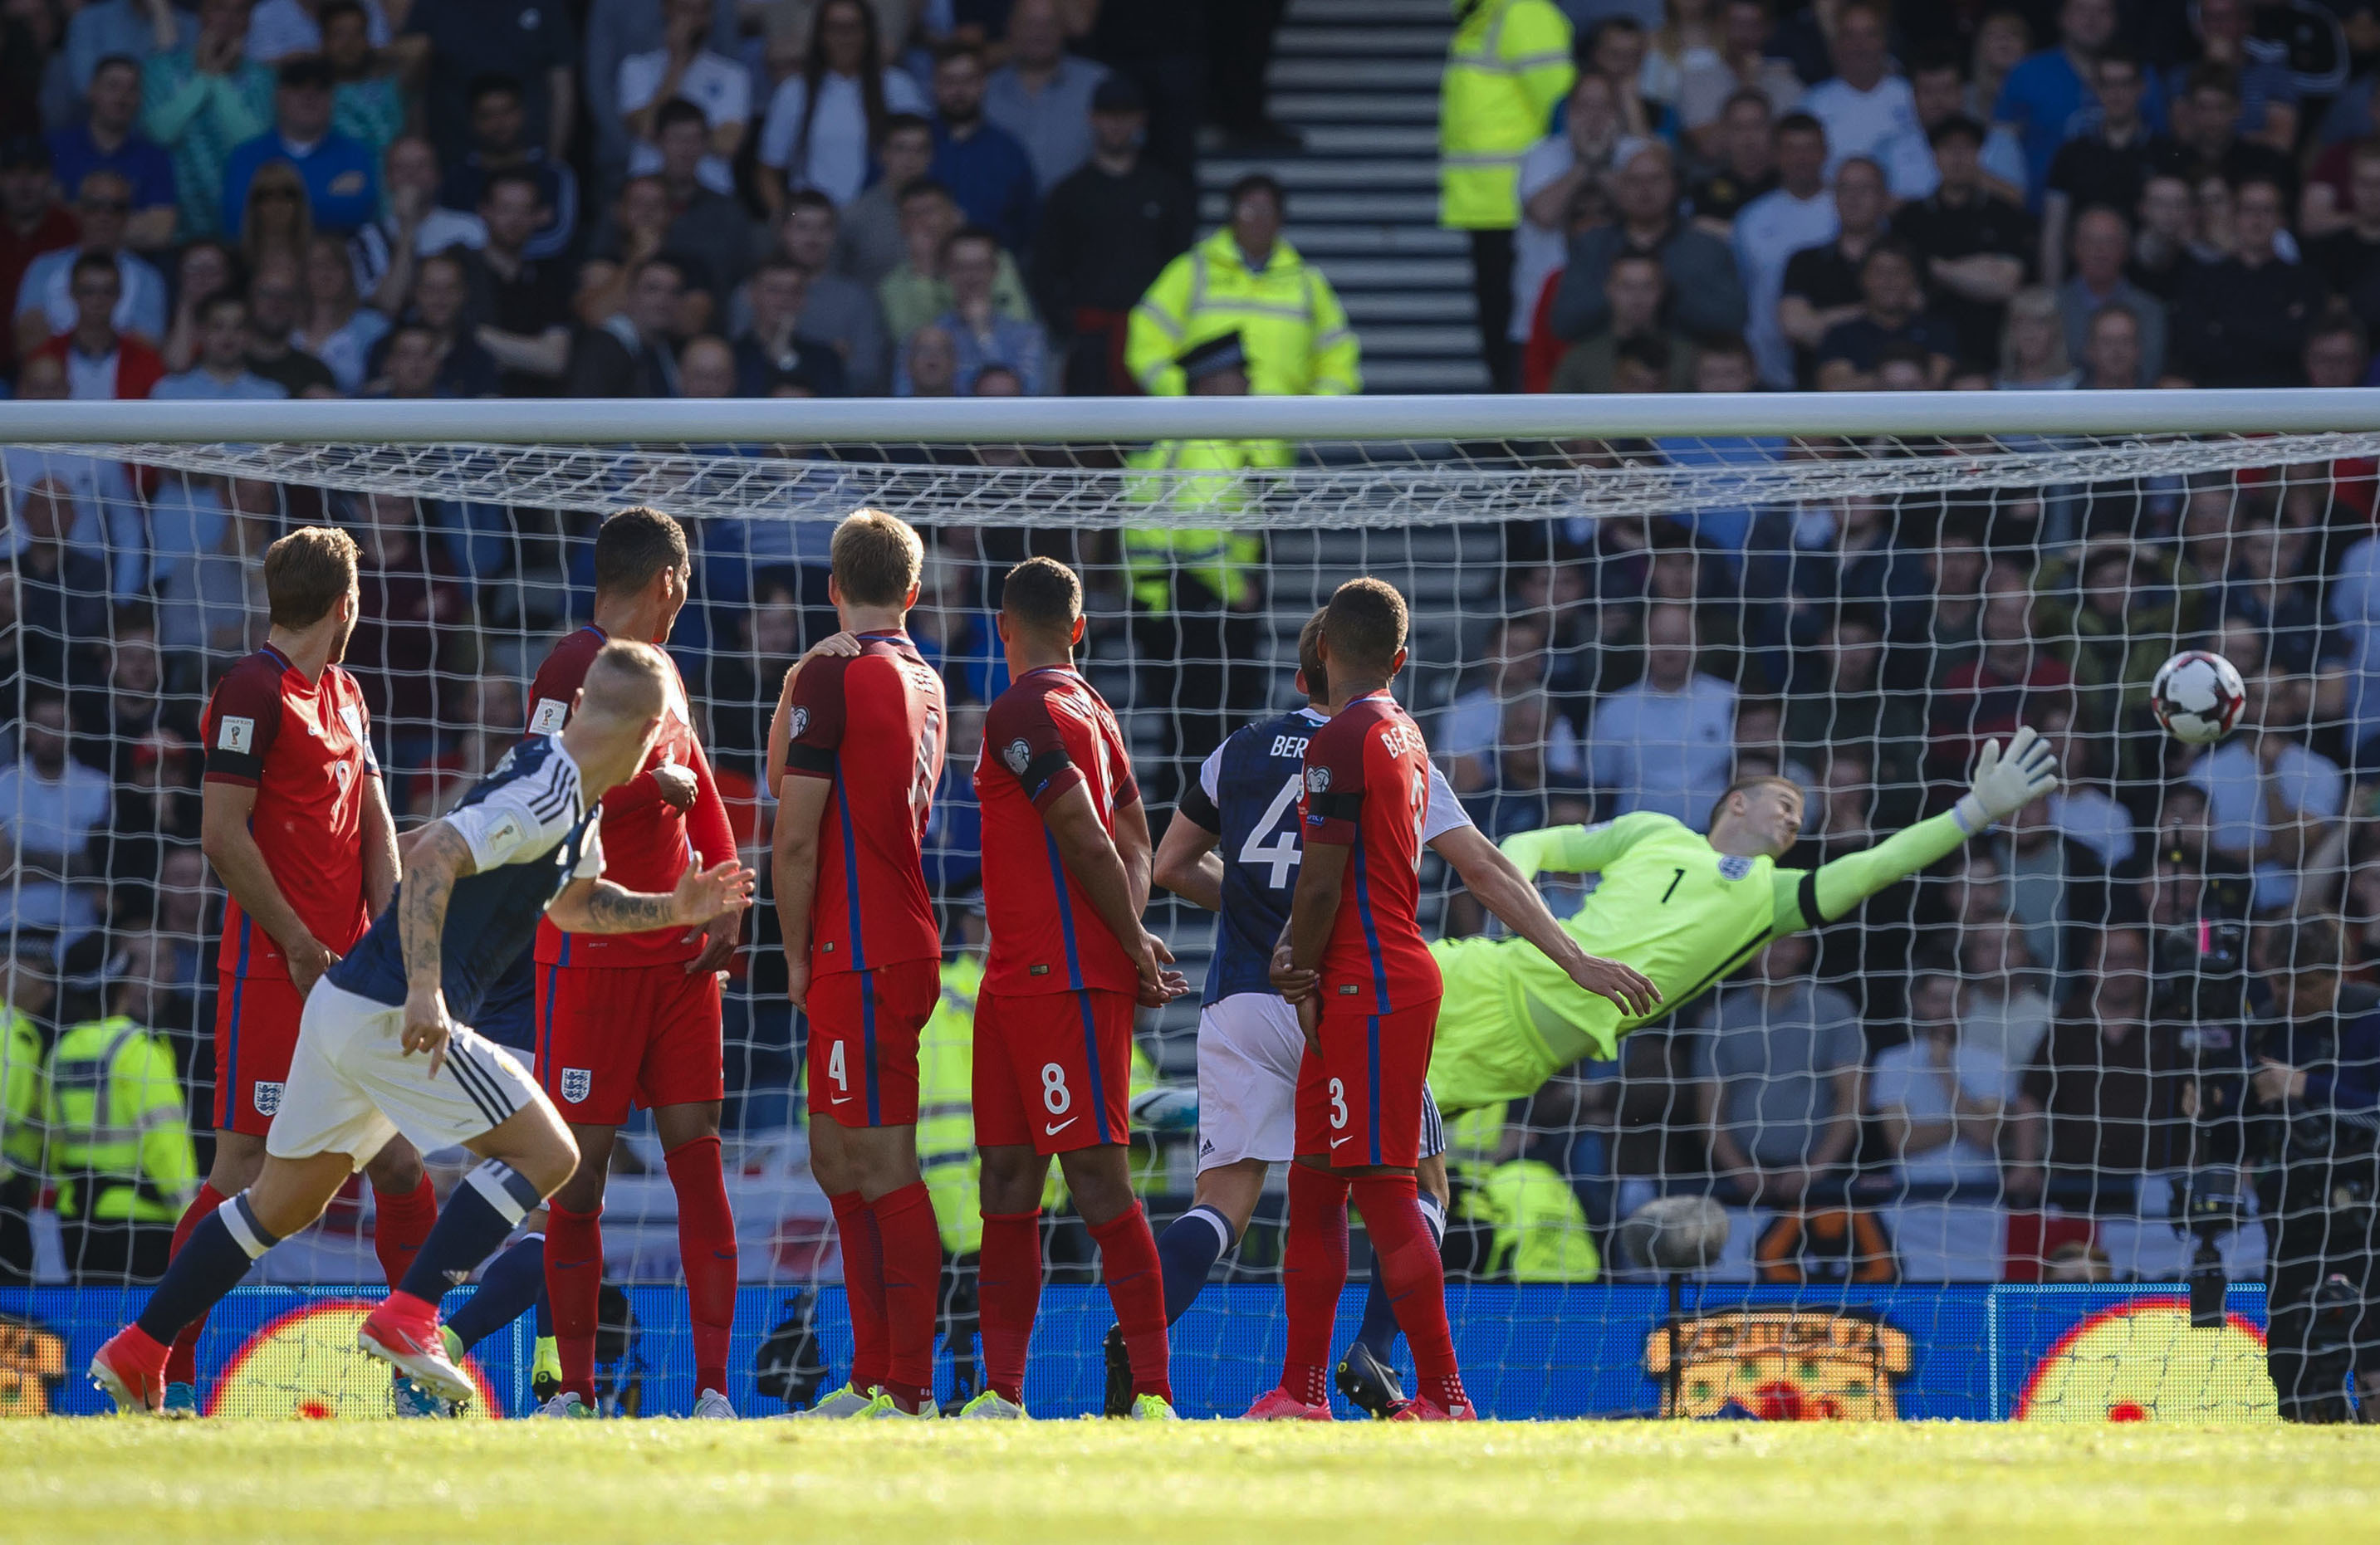 Scotland's Leigh Griffiths scores a free kick for his side (SNS)